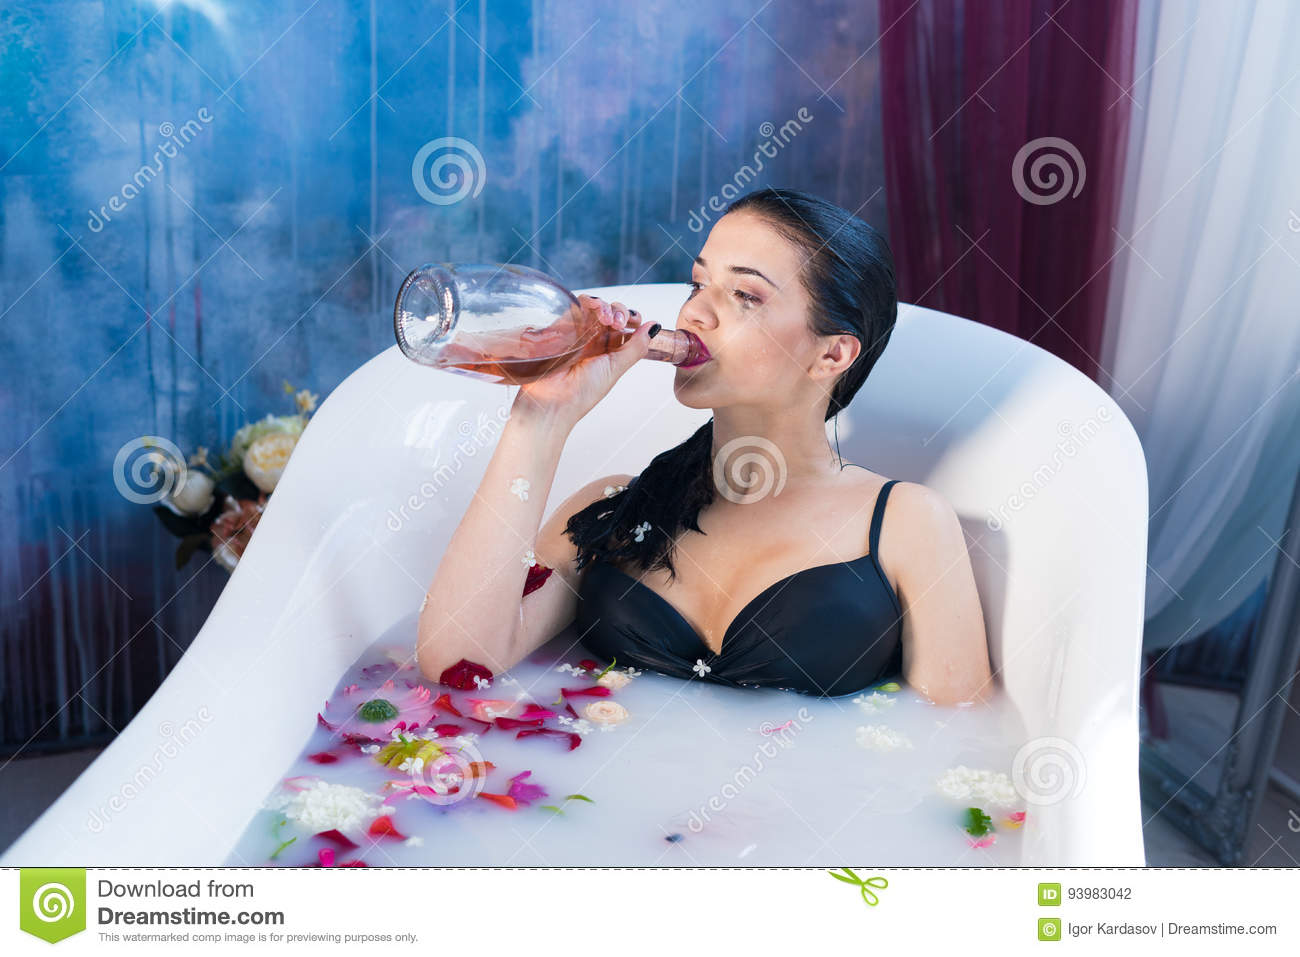 brunette drunk woman relaxing in a hot bath stock photo - image of